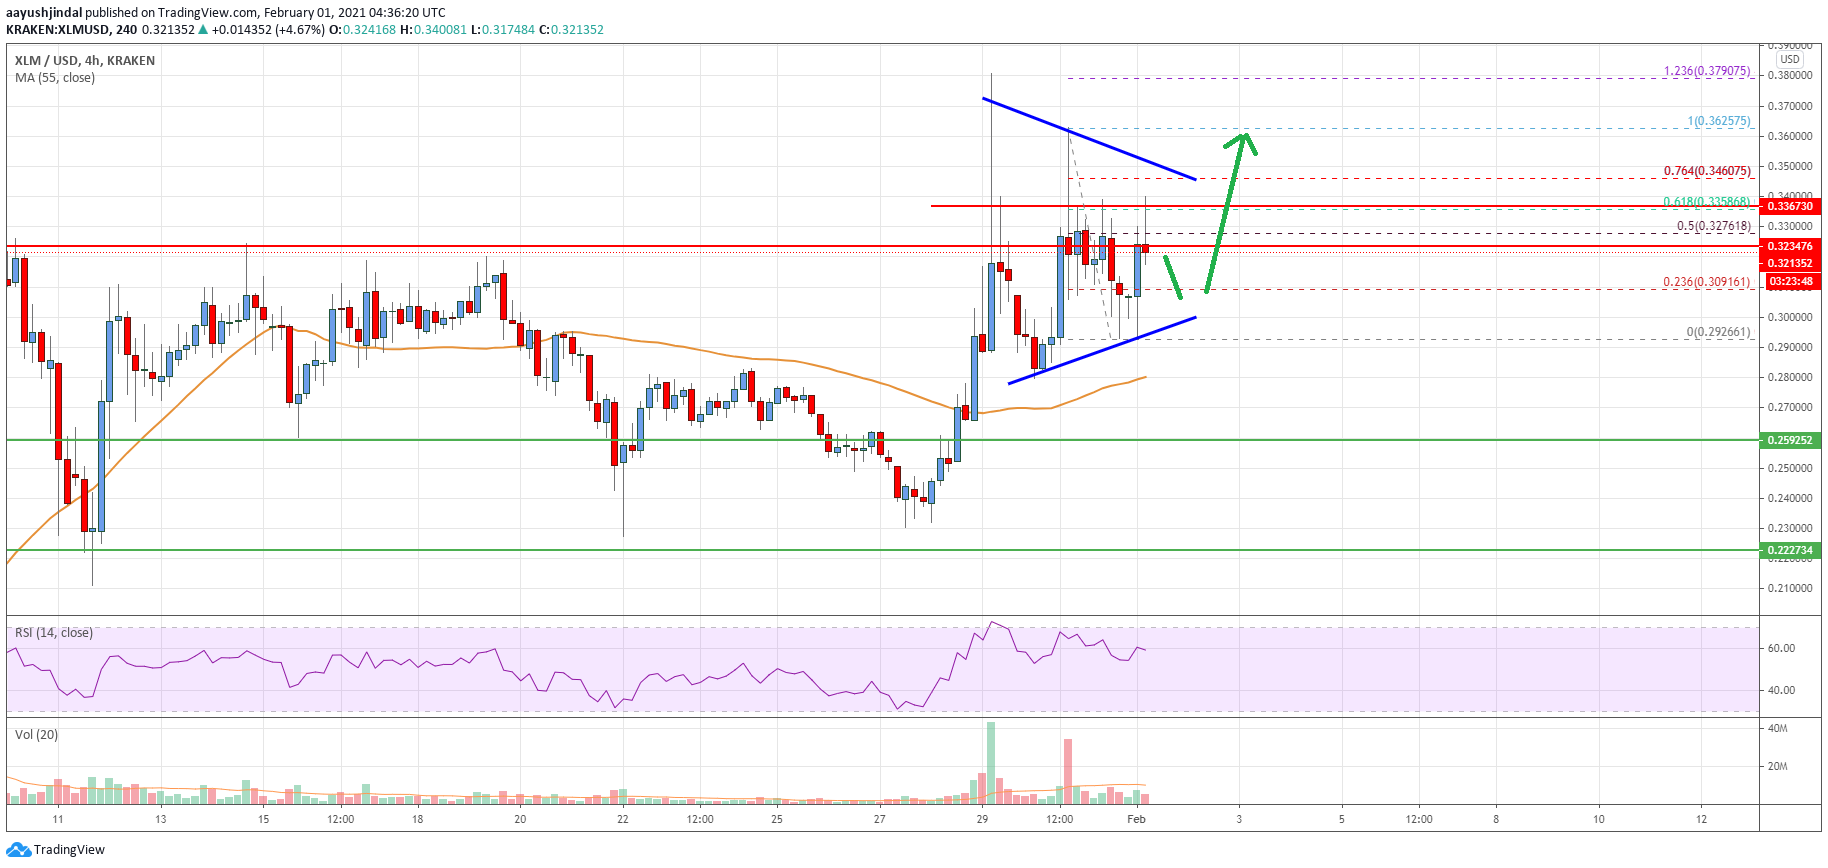 Stellar Lumen (XLM) Price Could Revisit $0.40 If It Clears $0.35